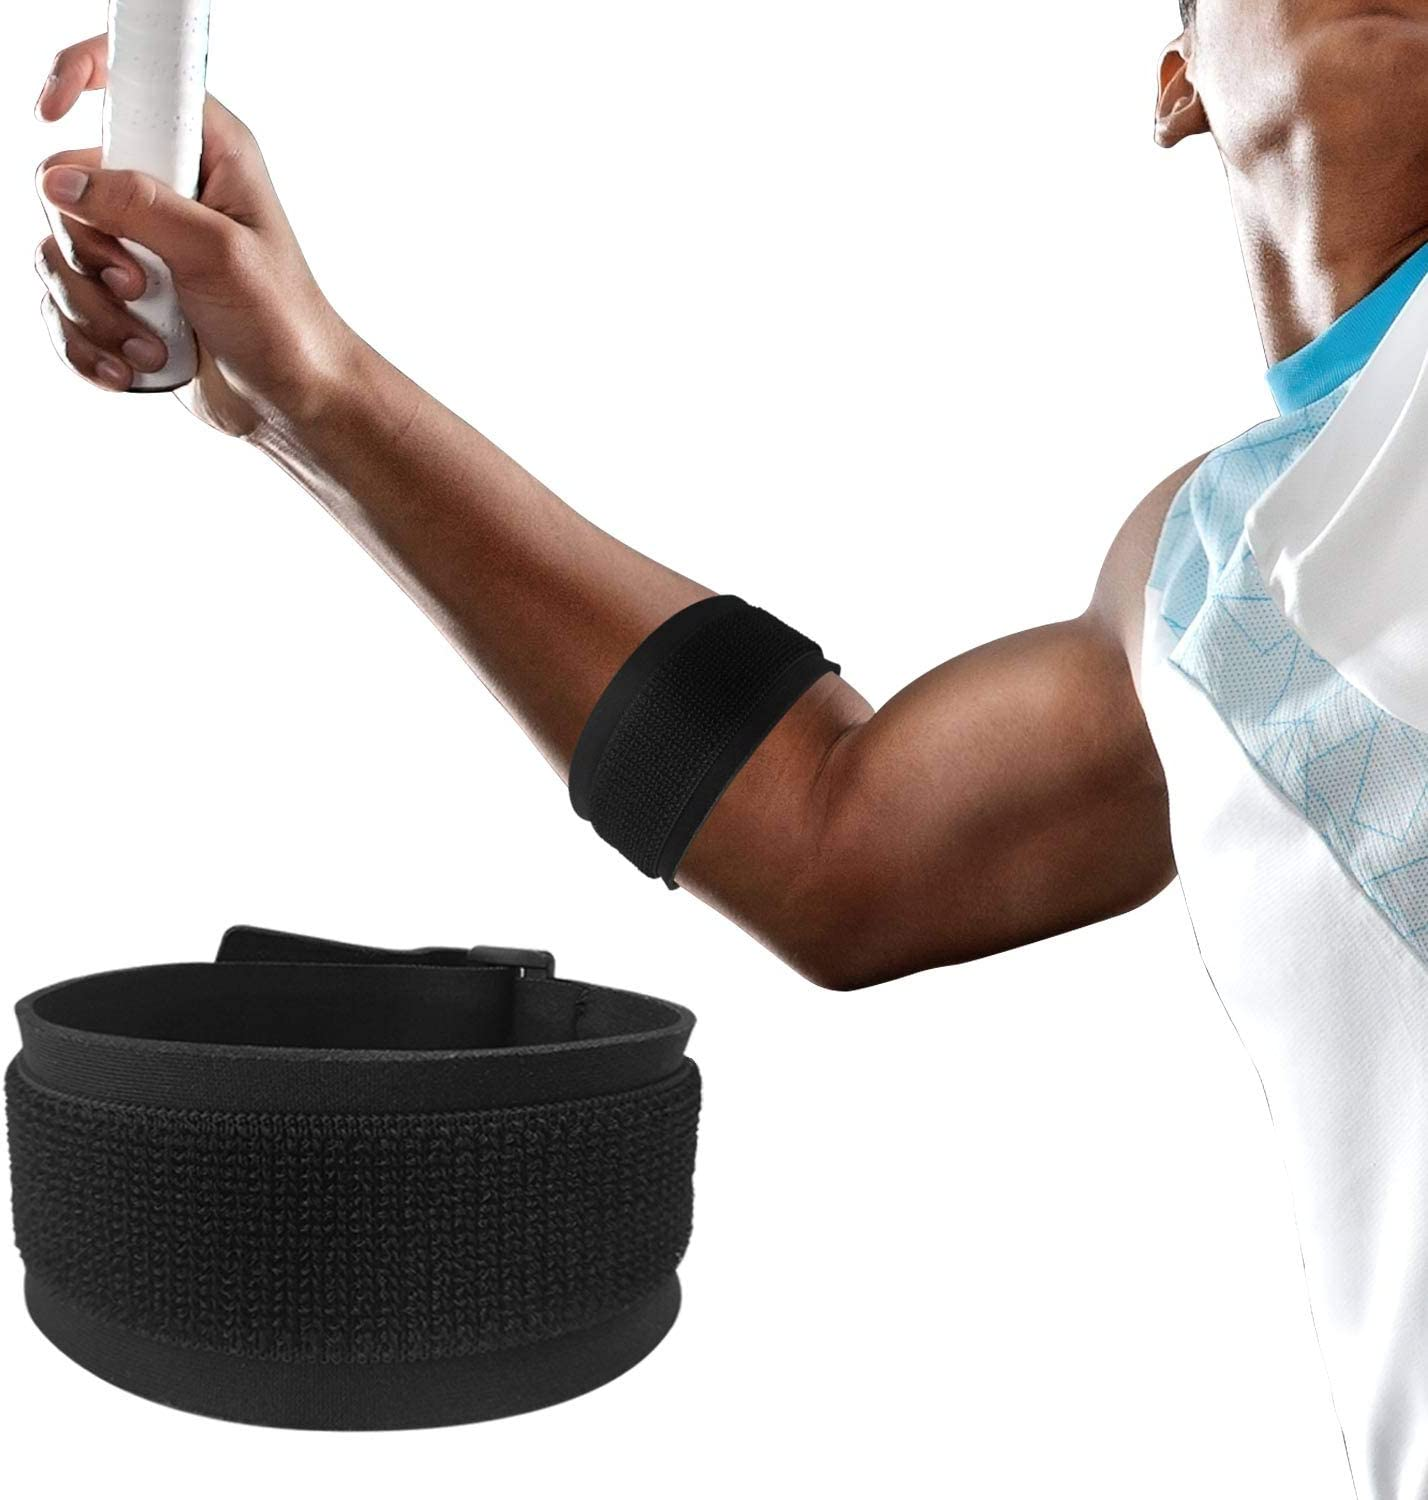 Elbow Brace - Regular store IFCASE Tennis Golfers Outlet sale feature Band Strap Fit Support